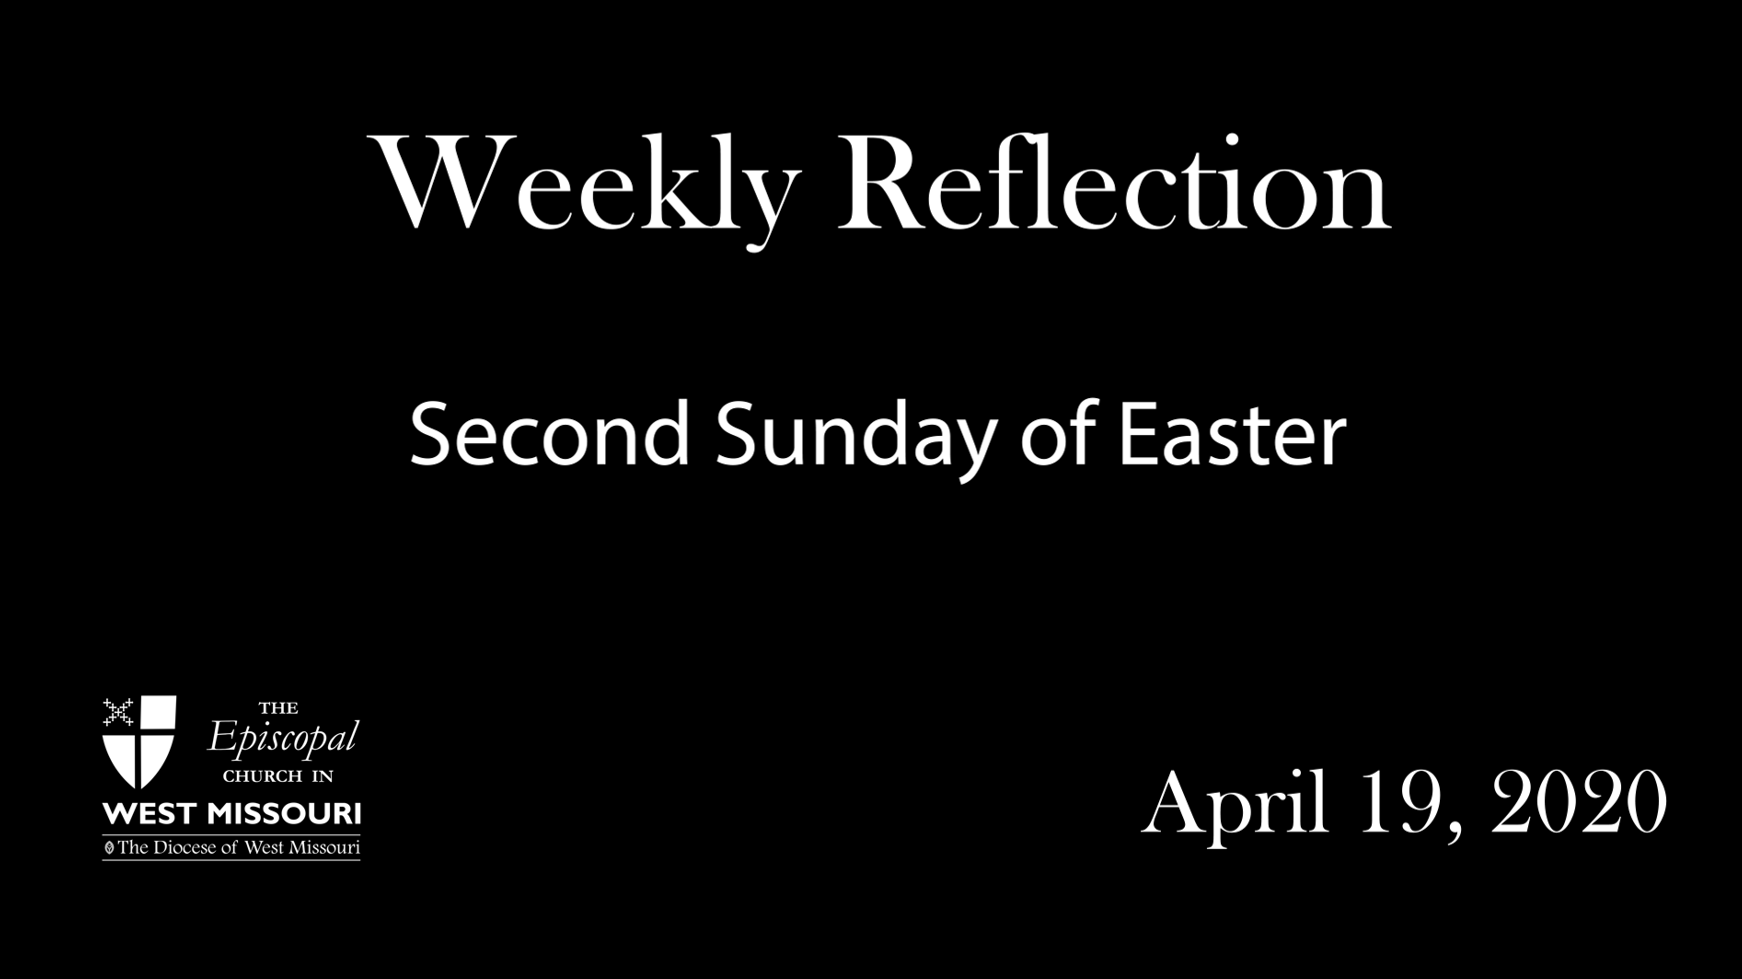 Weekly Reflection – Second Sunday of Easter